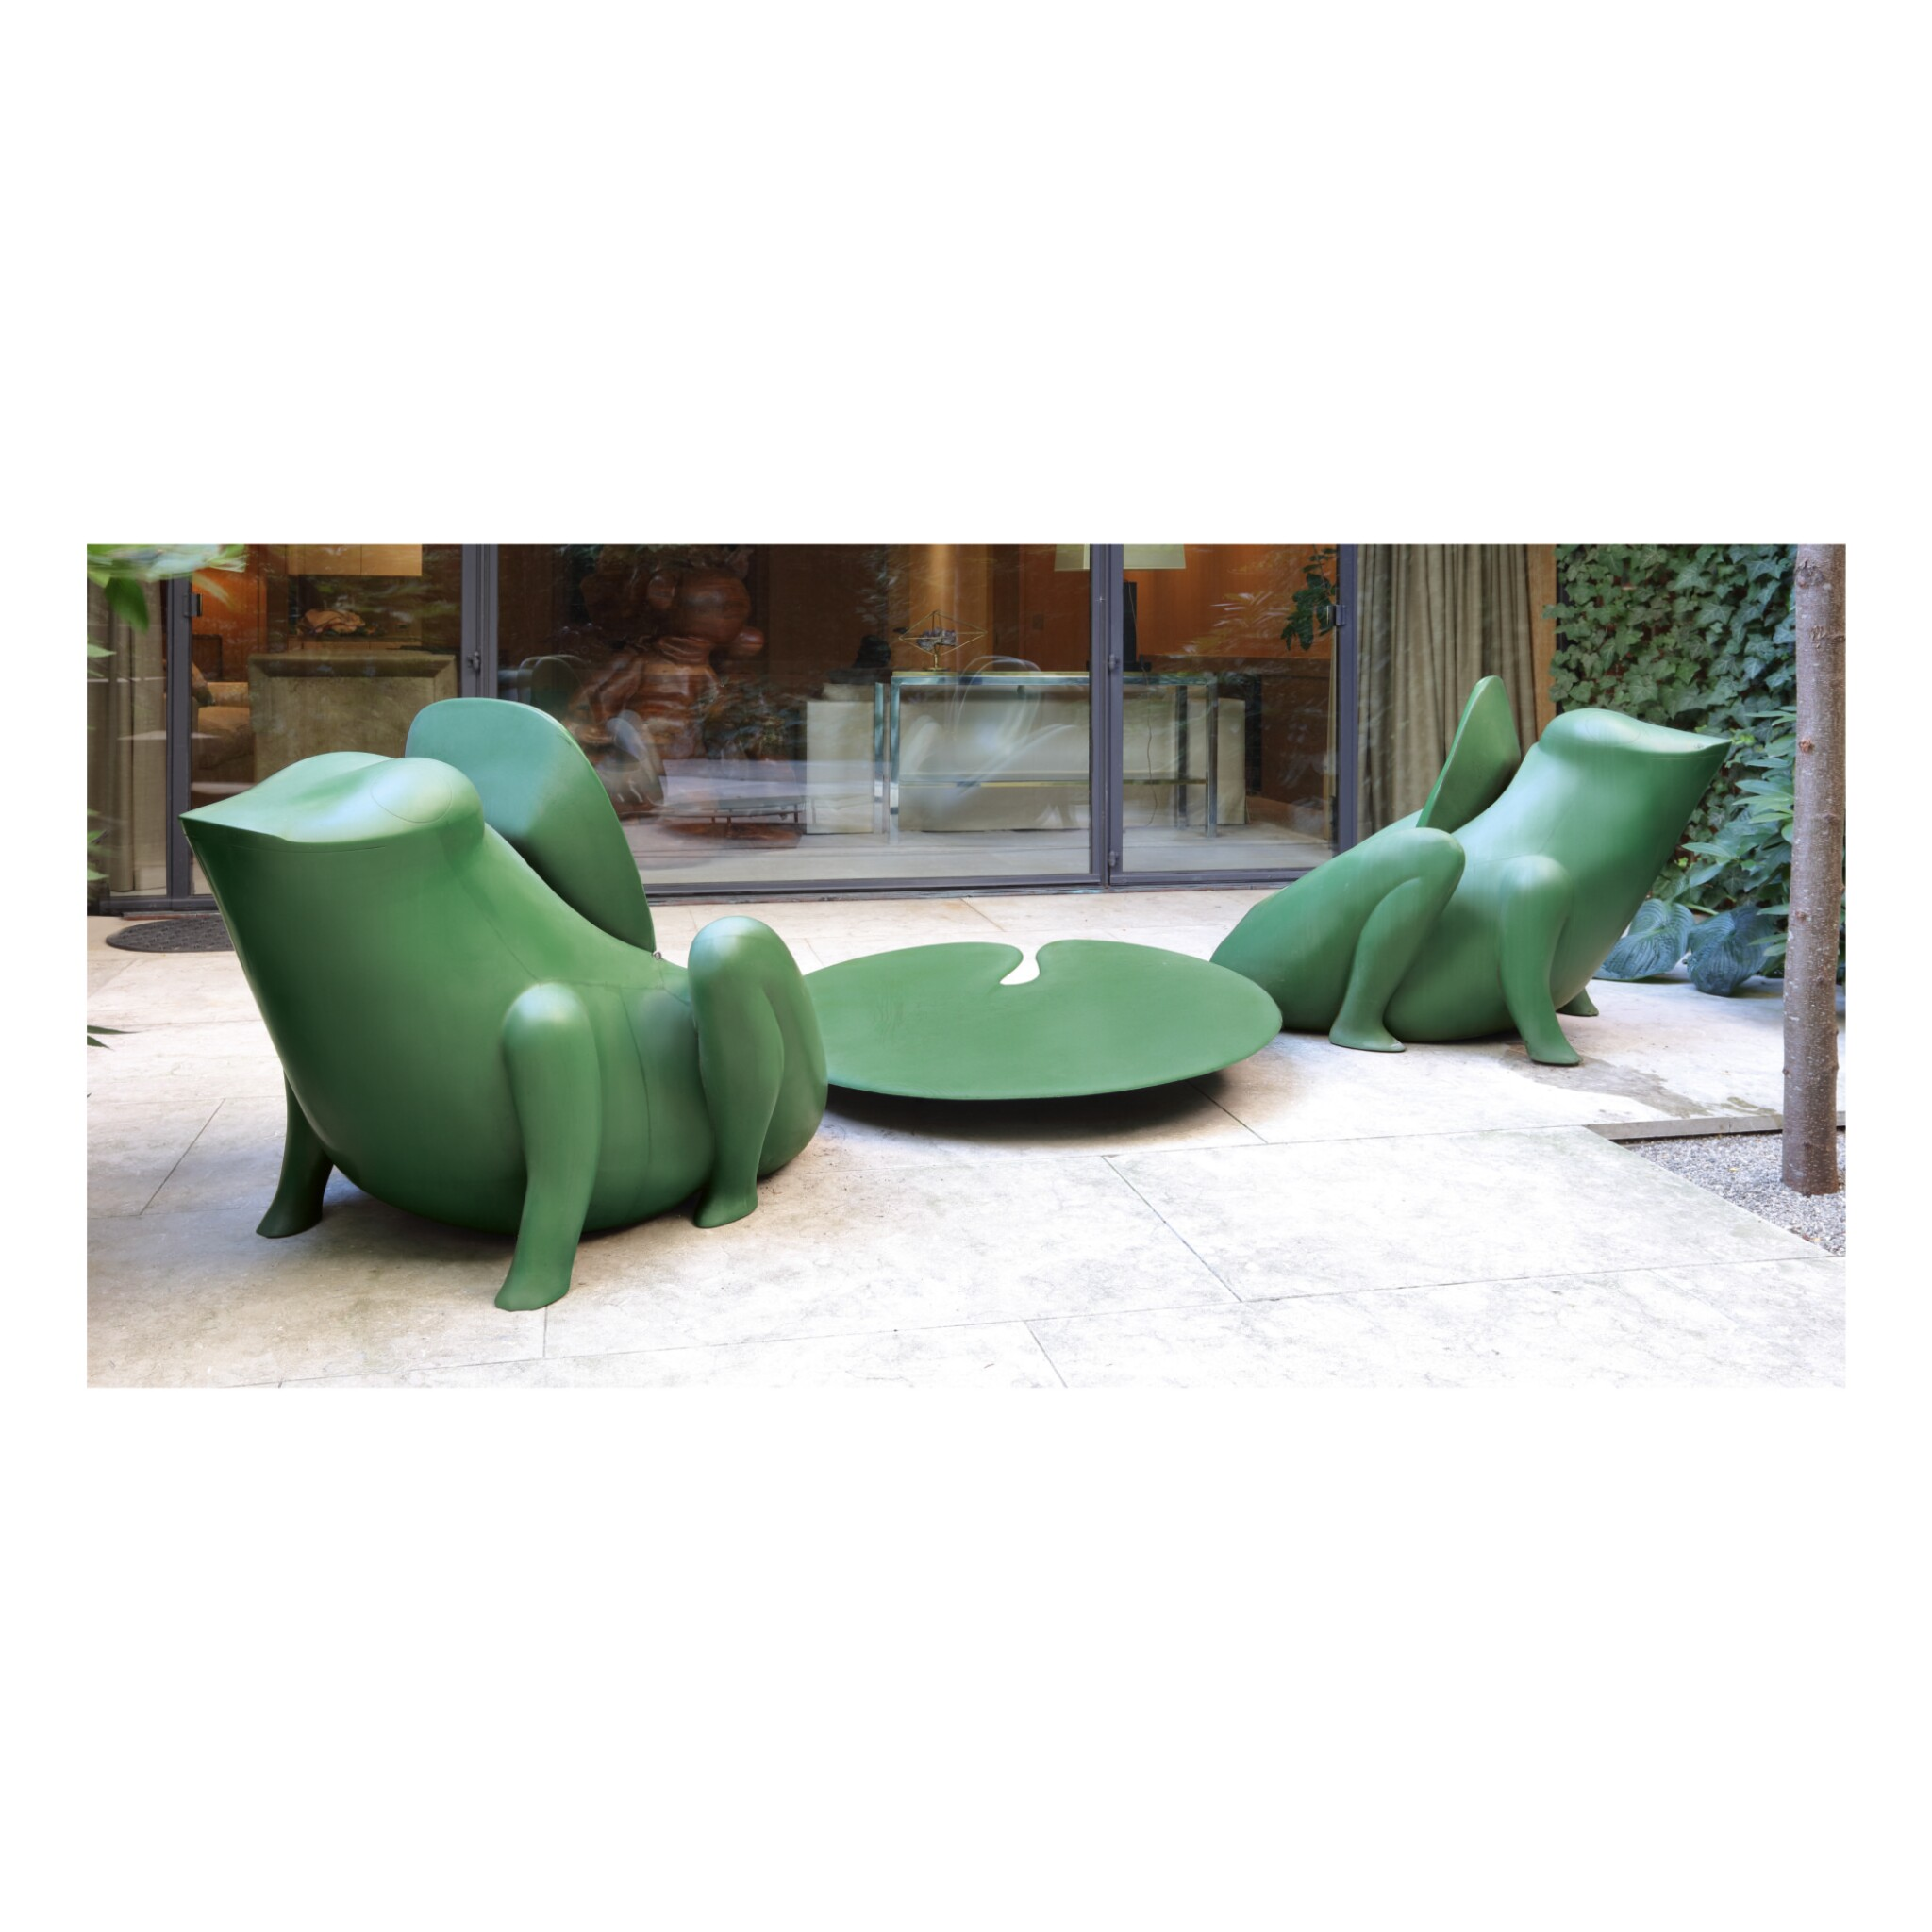 """View full screen - View 1 of Lot 188. FRANÇOIS-XAVIER LALANNE 